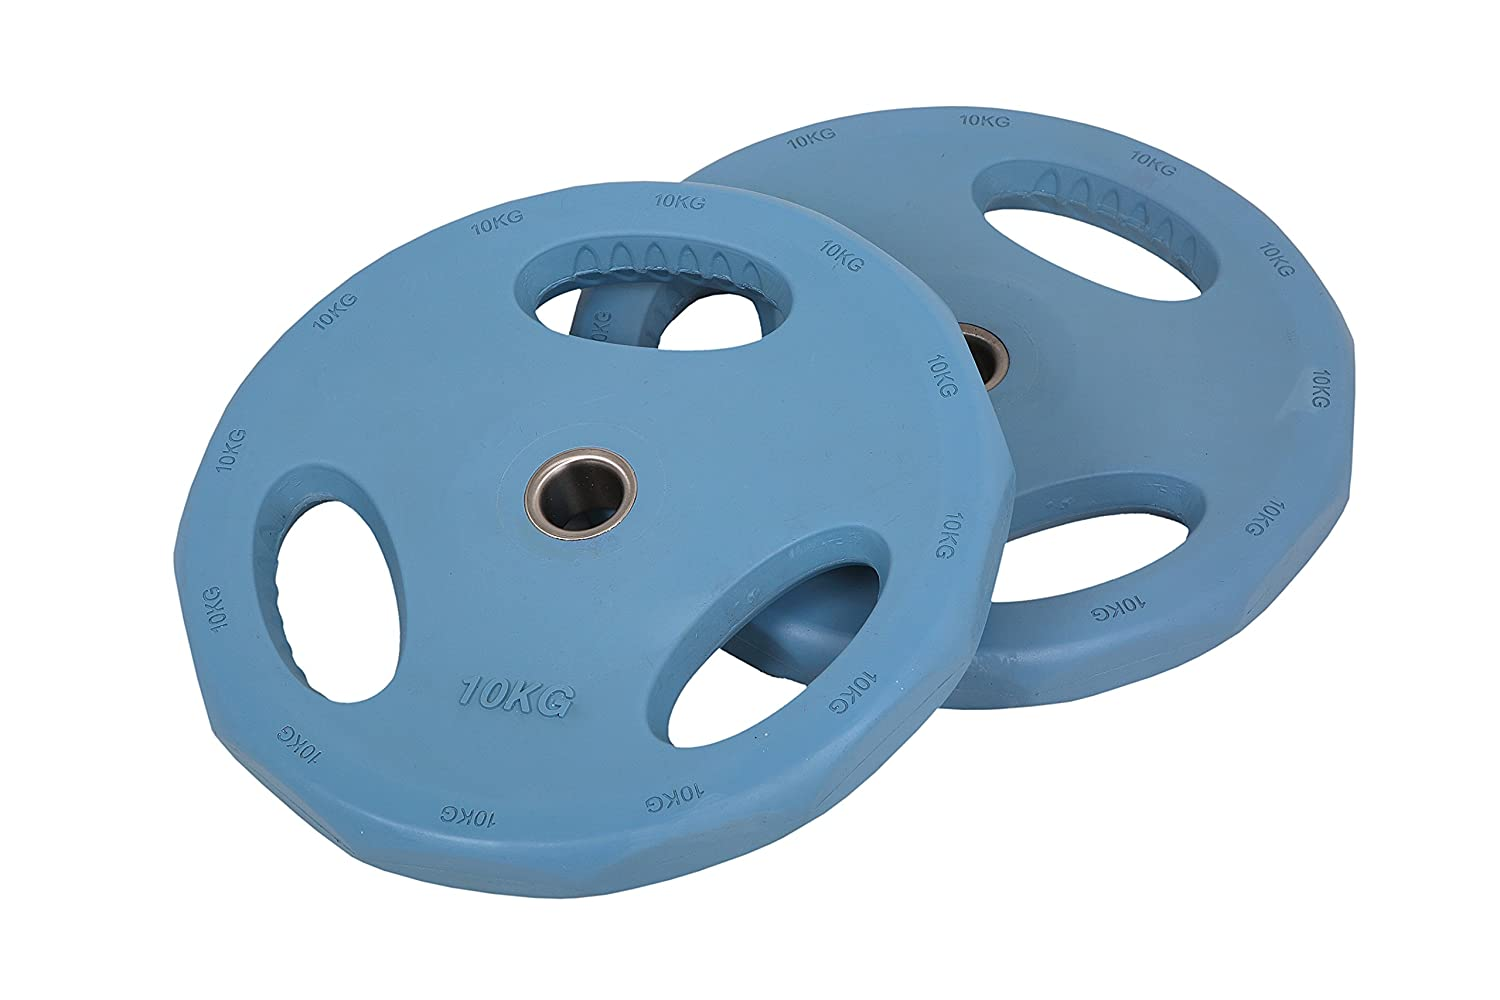 10kg Blue Rubber 30mm Discs (x 2) FunctionalFitness